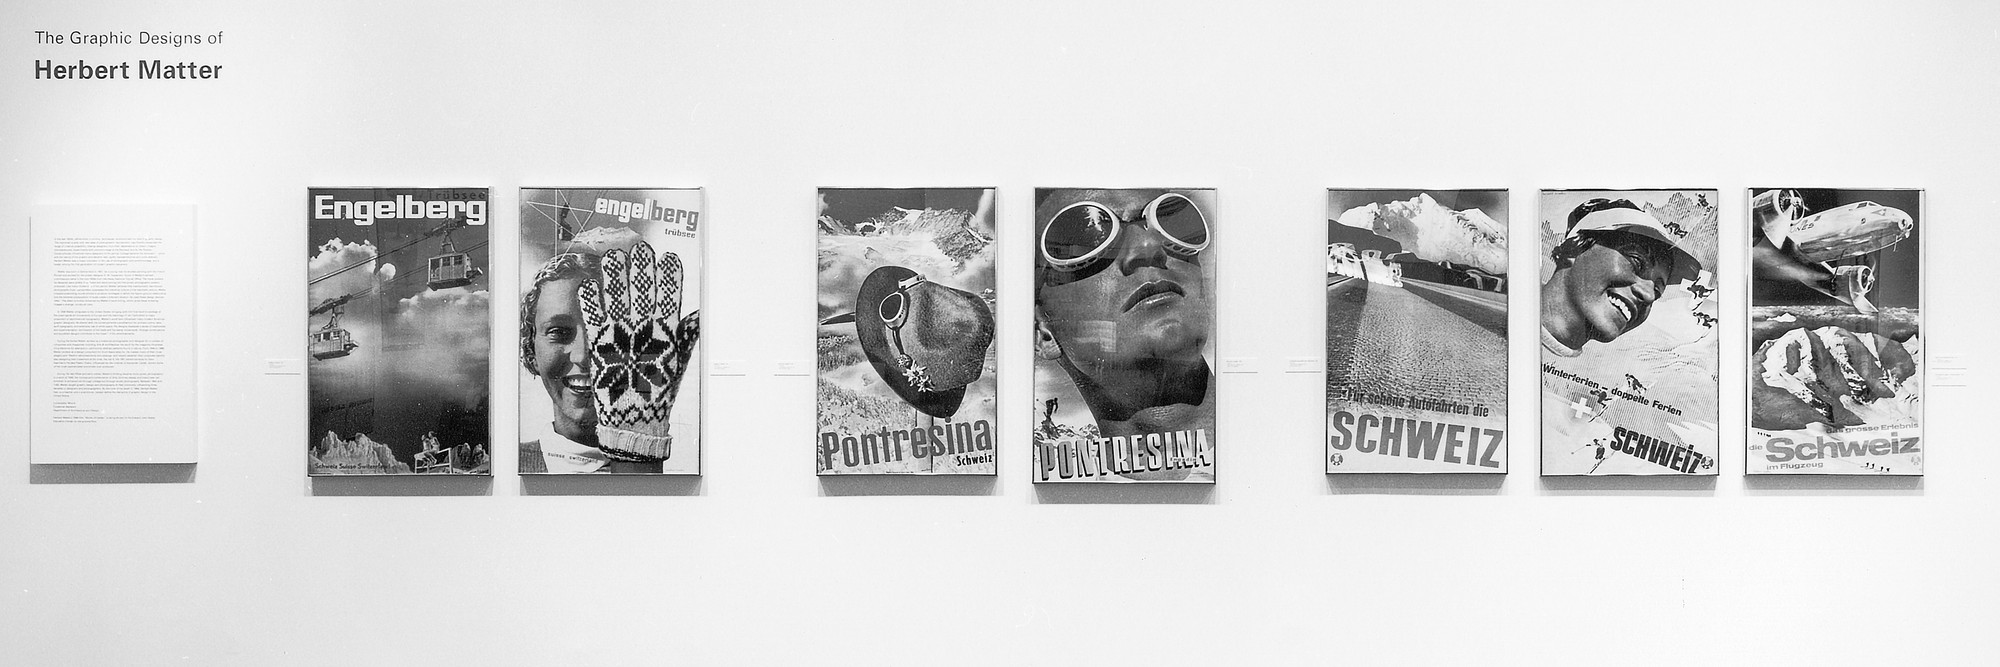 Installation view of The Graphic Designs of Herbert Matter at The Museum of Modern Art, New York. Photo: Mali Olatunji